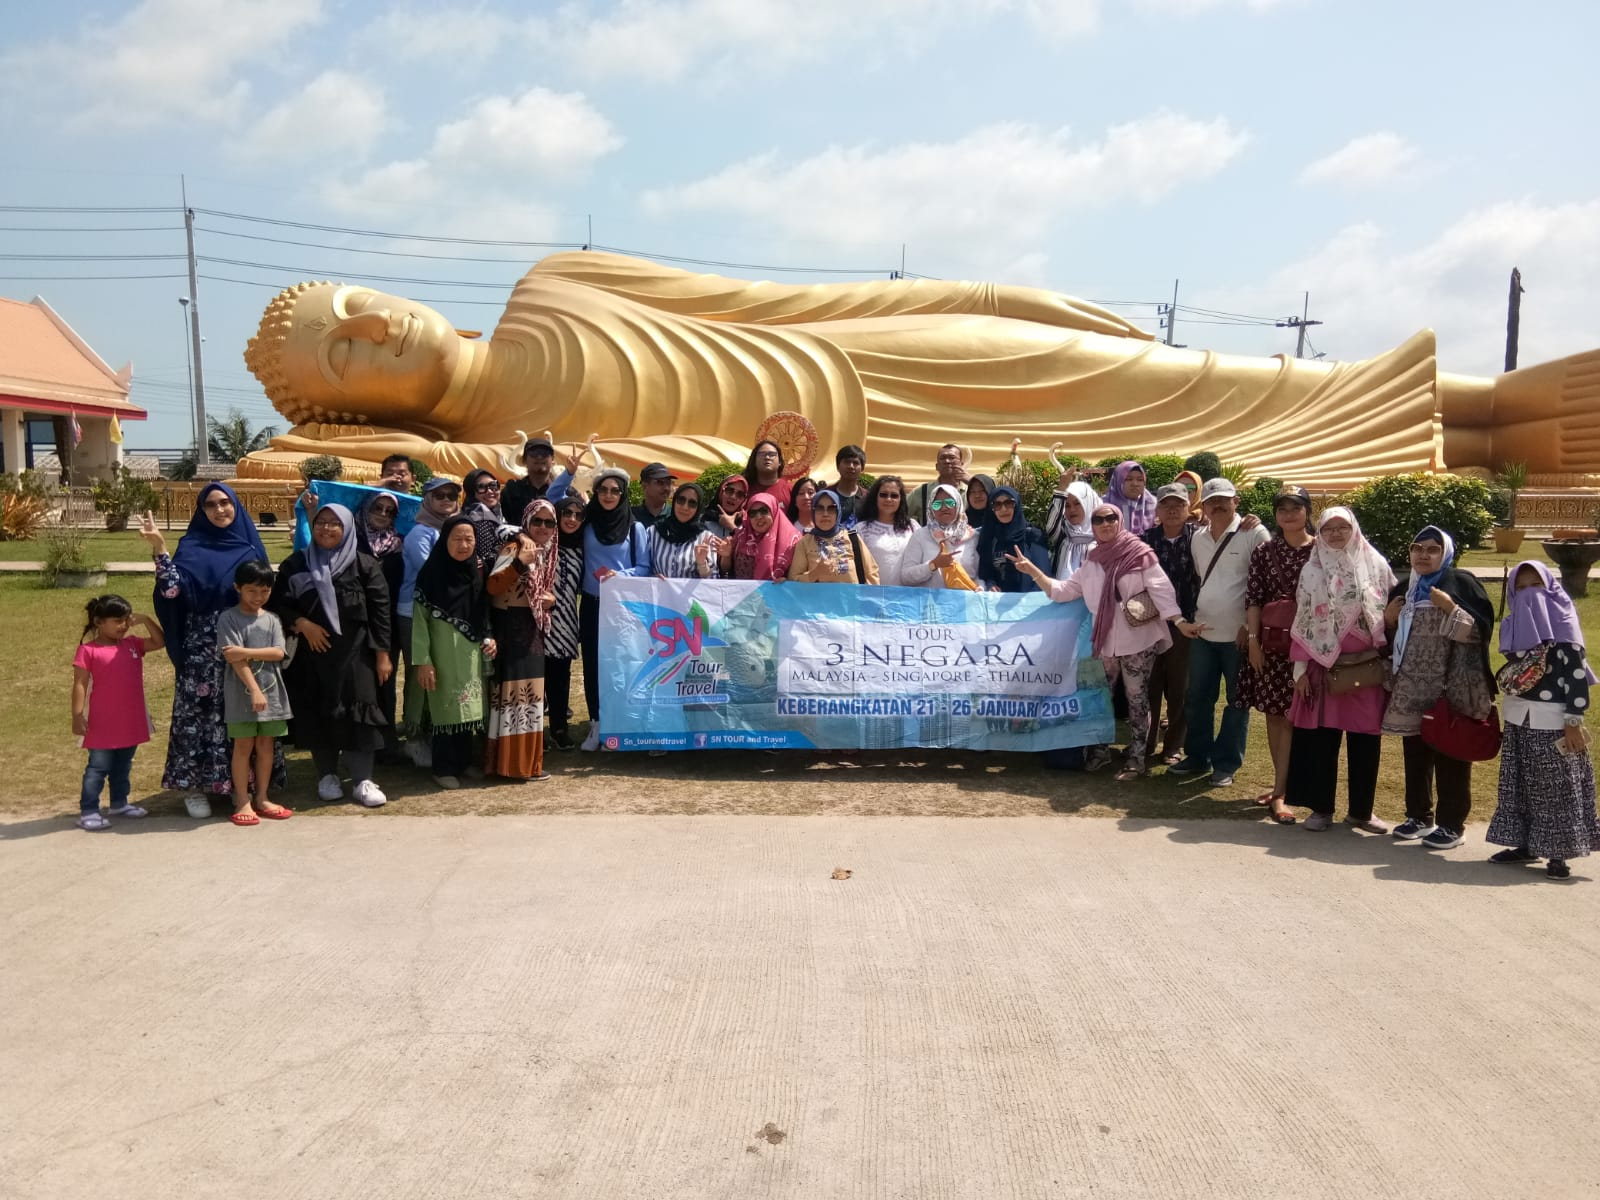 TOUR 3 NEGARA (SIN-KL-THAI) 21 - 26JAN 2019